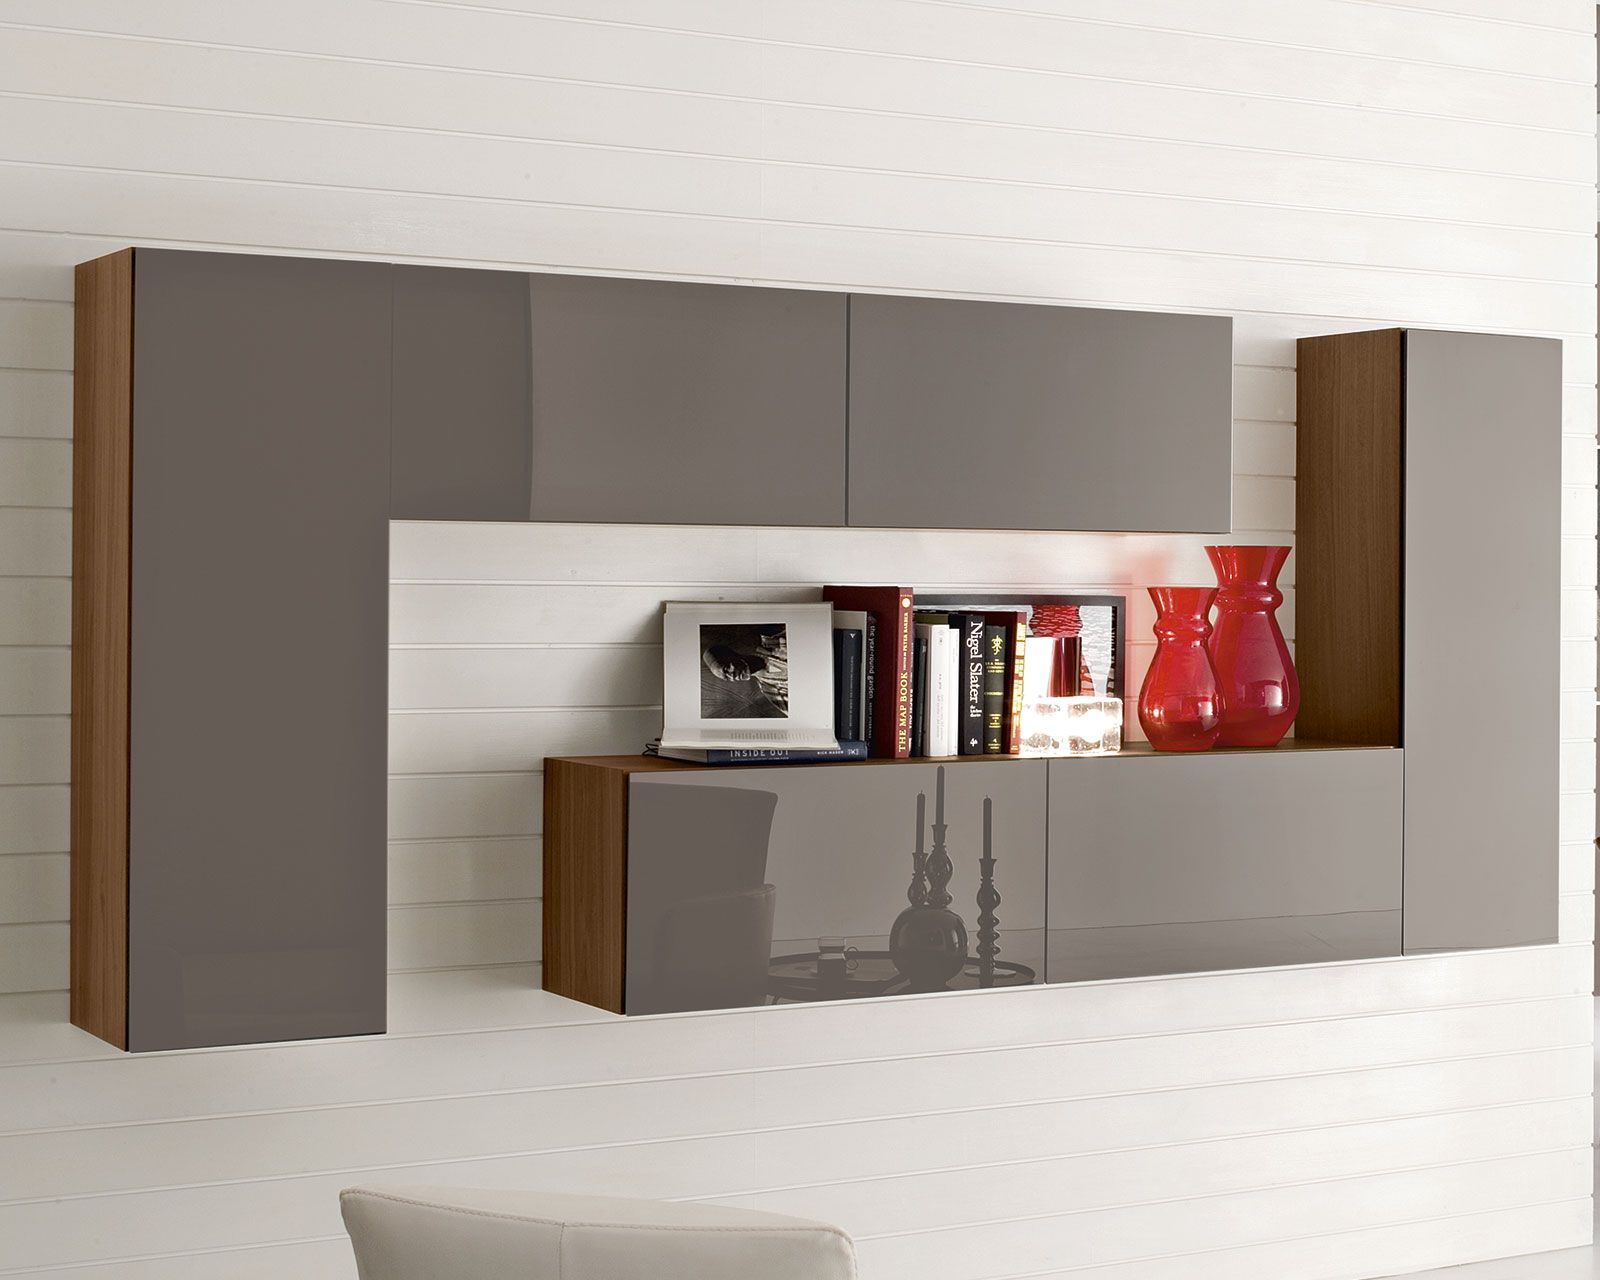 Great Accessories U0026 Furniture,Gorgeous Hanging Shelving Systems With Stunning L  Shaped Wall Mount Storage Bookshelf